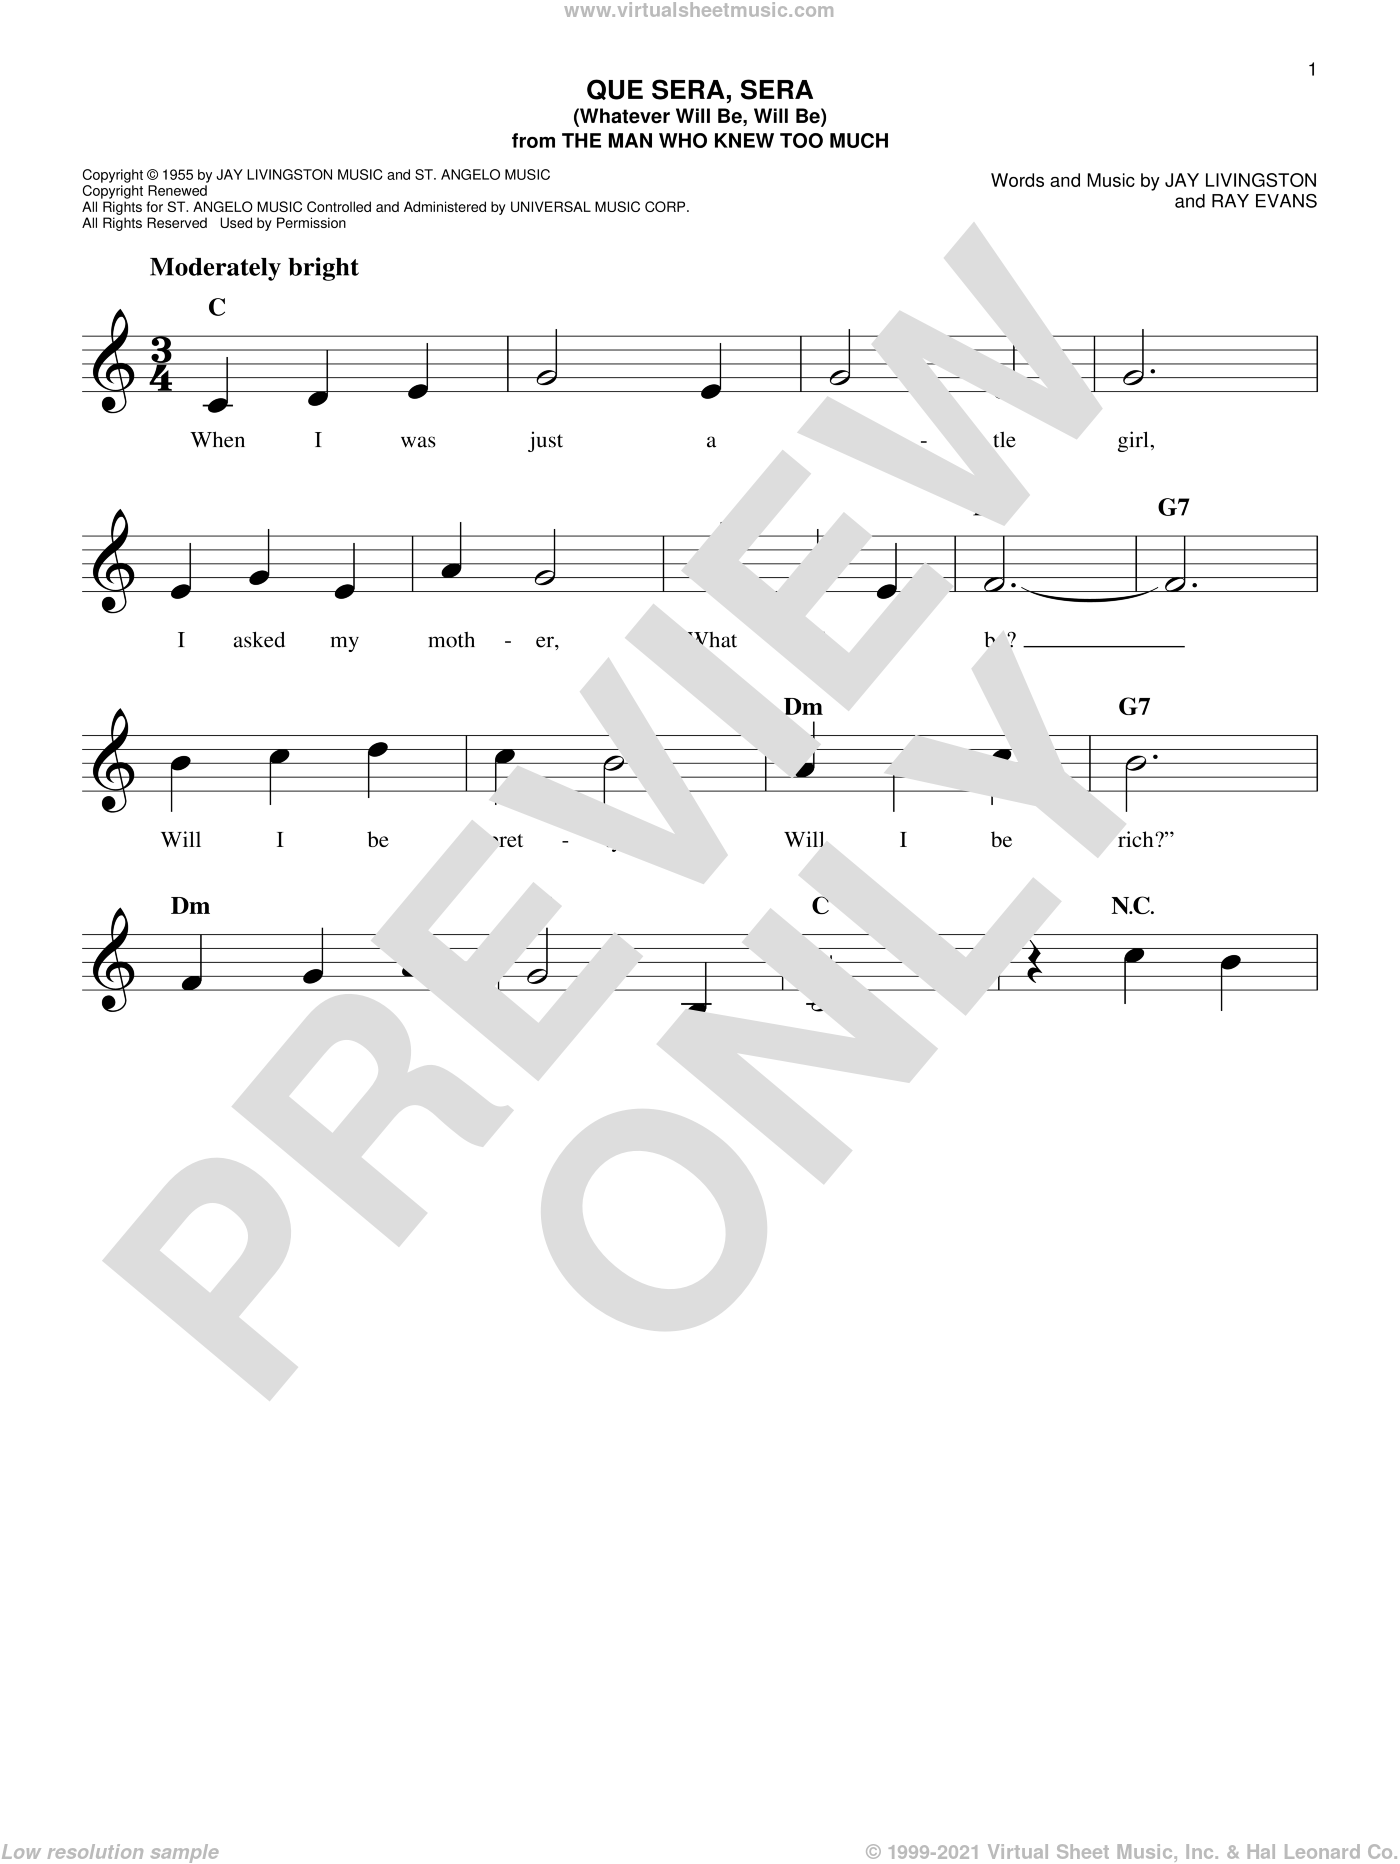 Que Sera, Sera (Whatever Will Be, Will Be) sheet music for voice and other instruments (fake book) by Doris Day, Jay Livingston and Raymond B. Evans, intermediate skill level